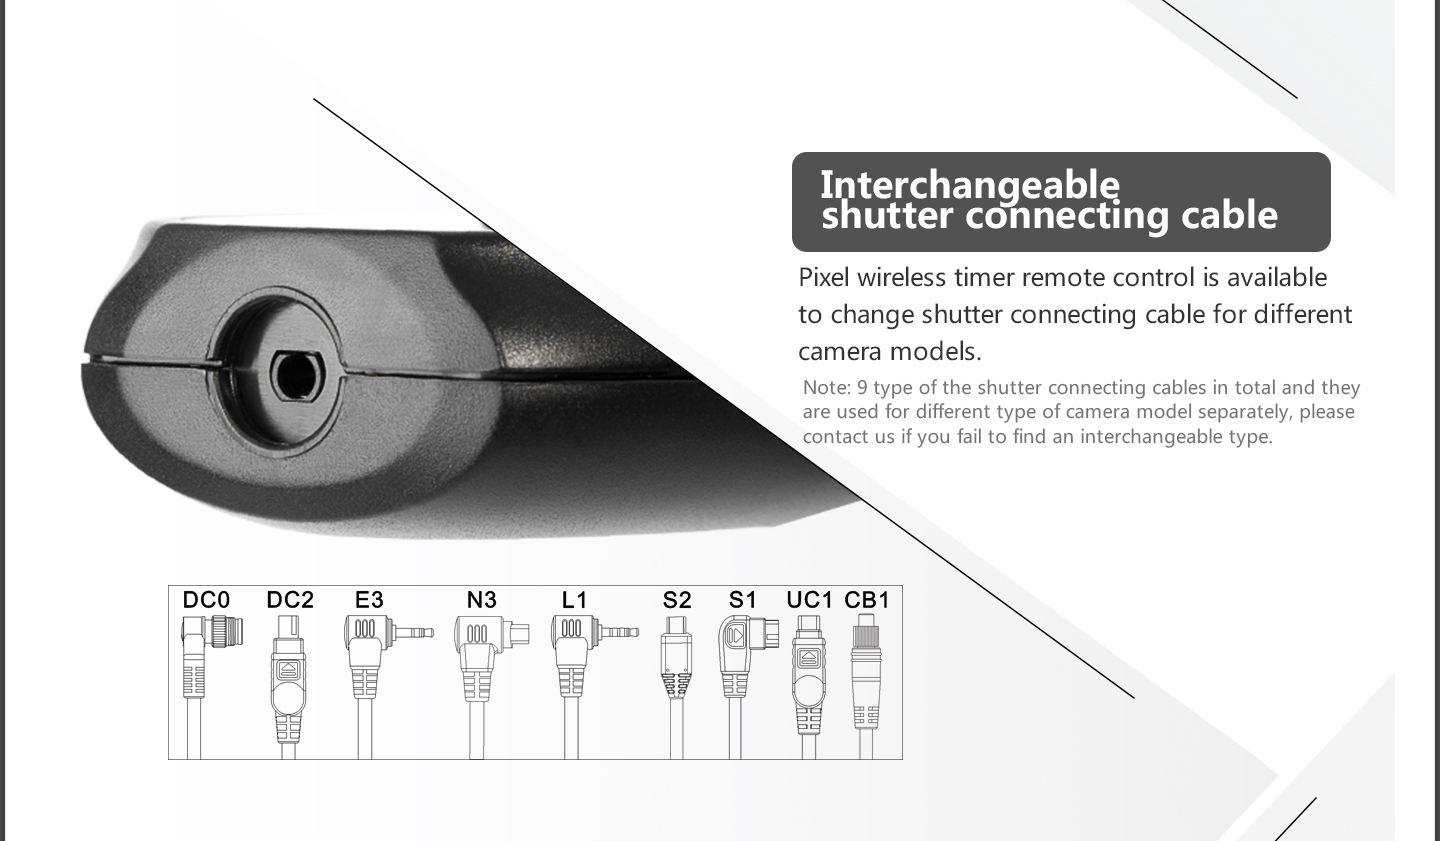 lneterchangeable, shutter connecting cable